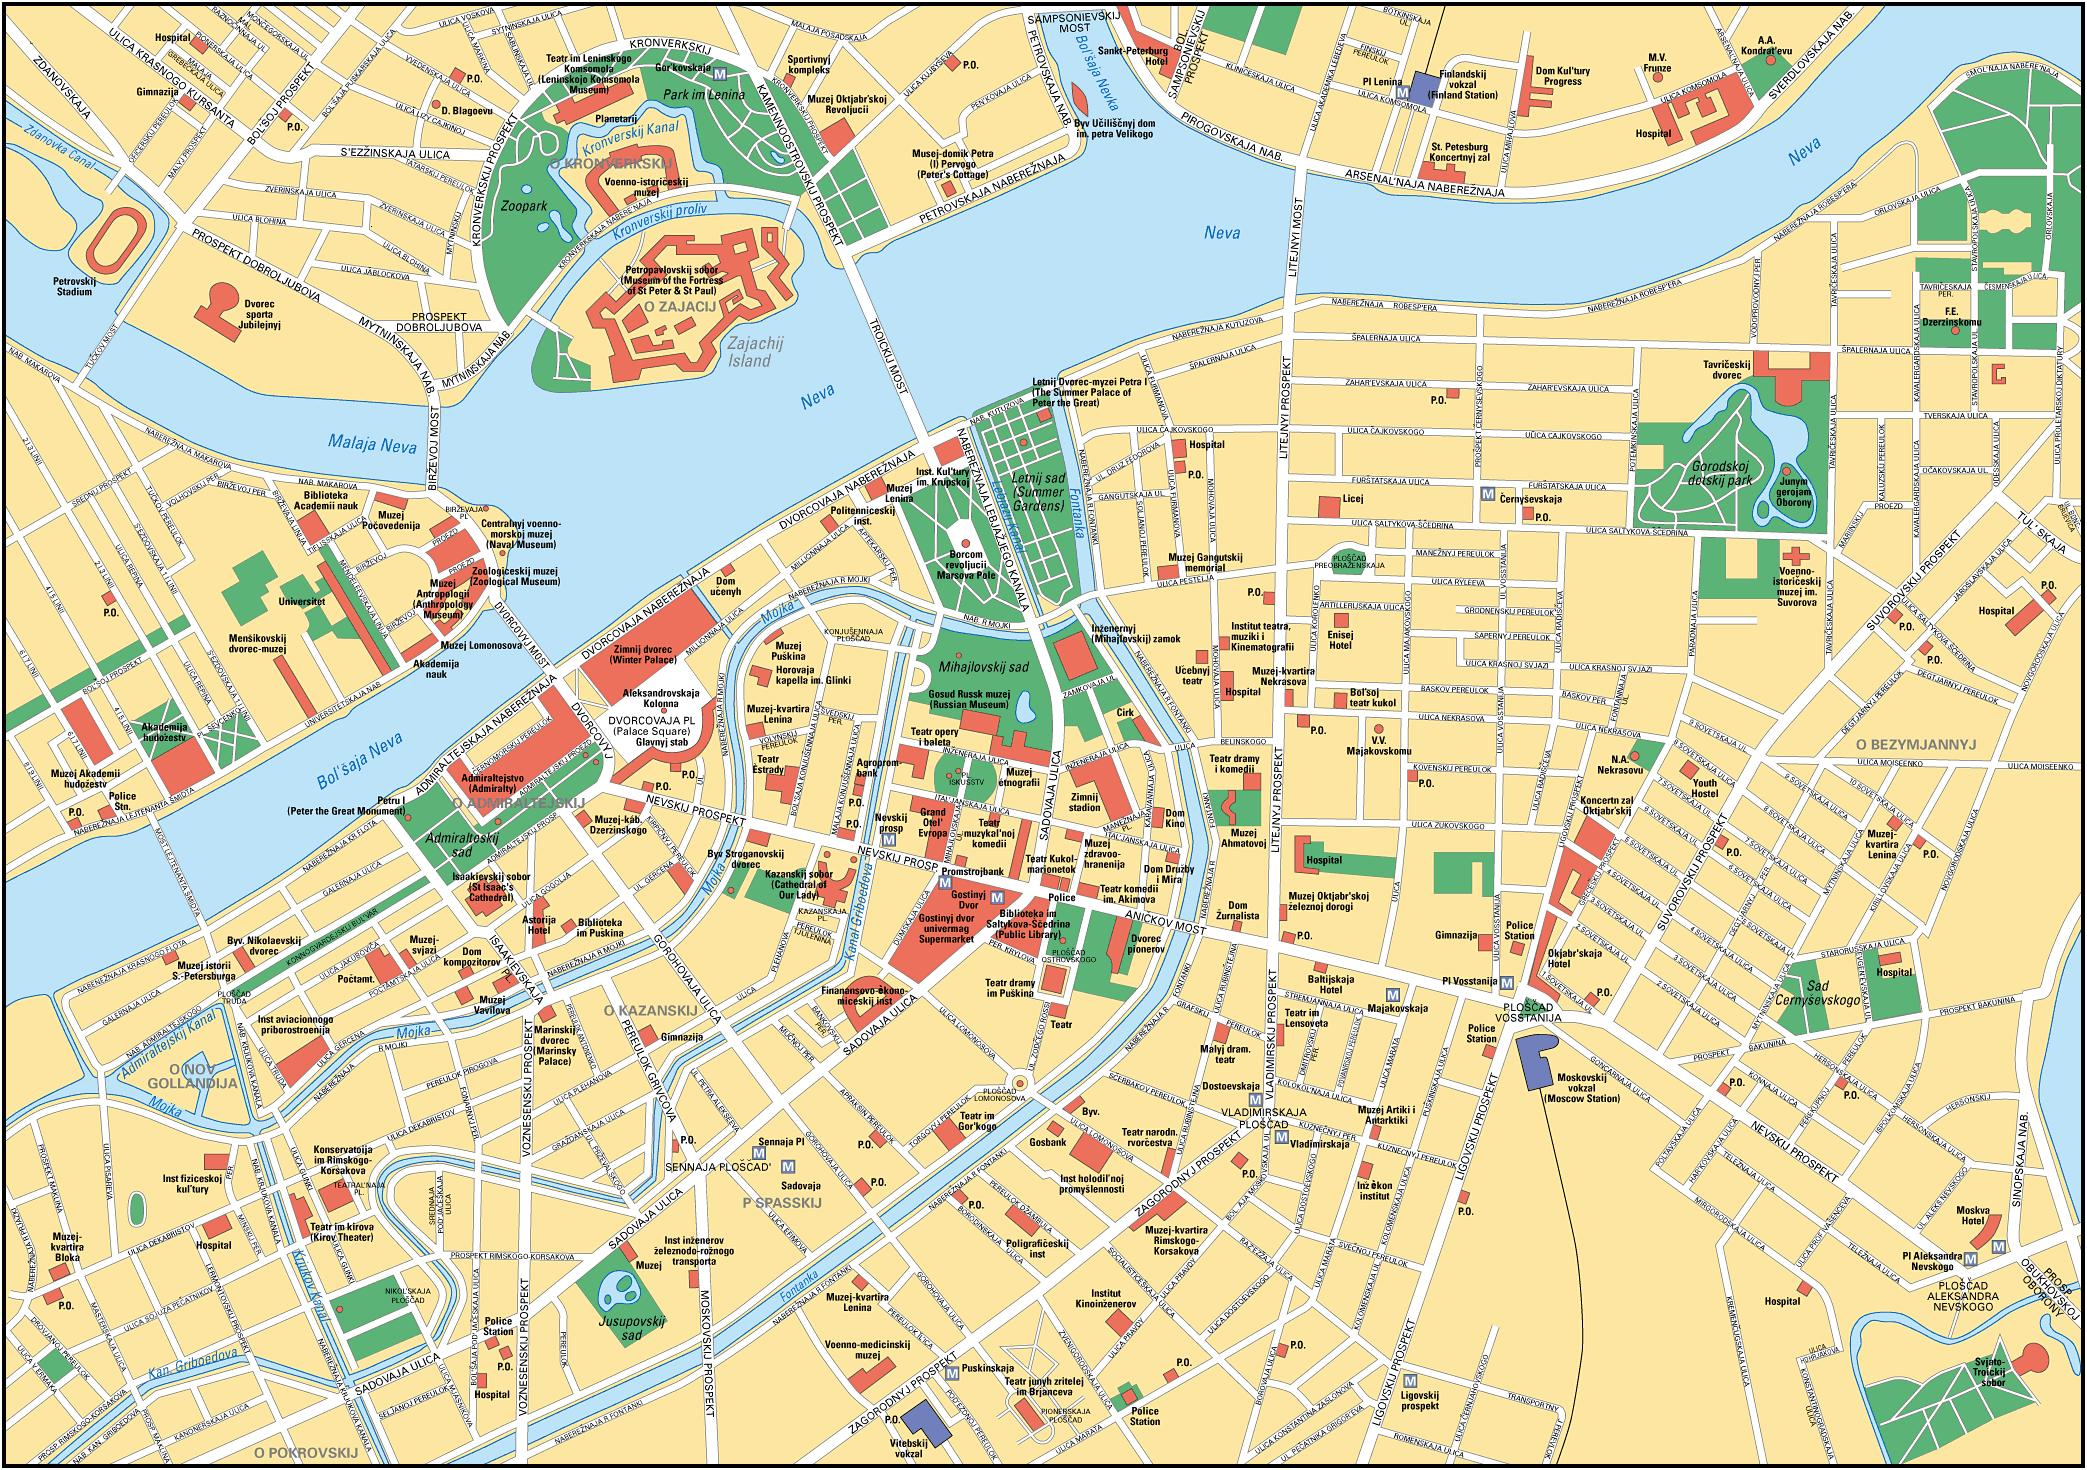 St petersburg map see map details from www rus tourist ru